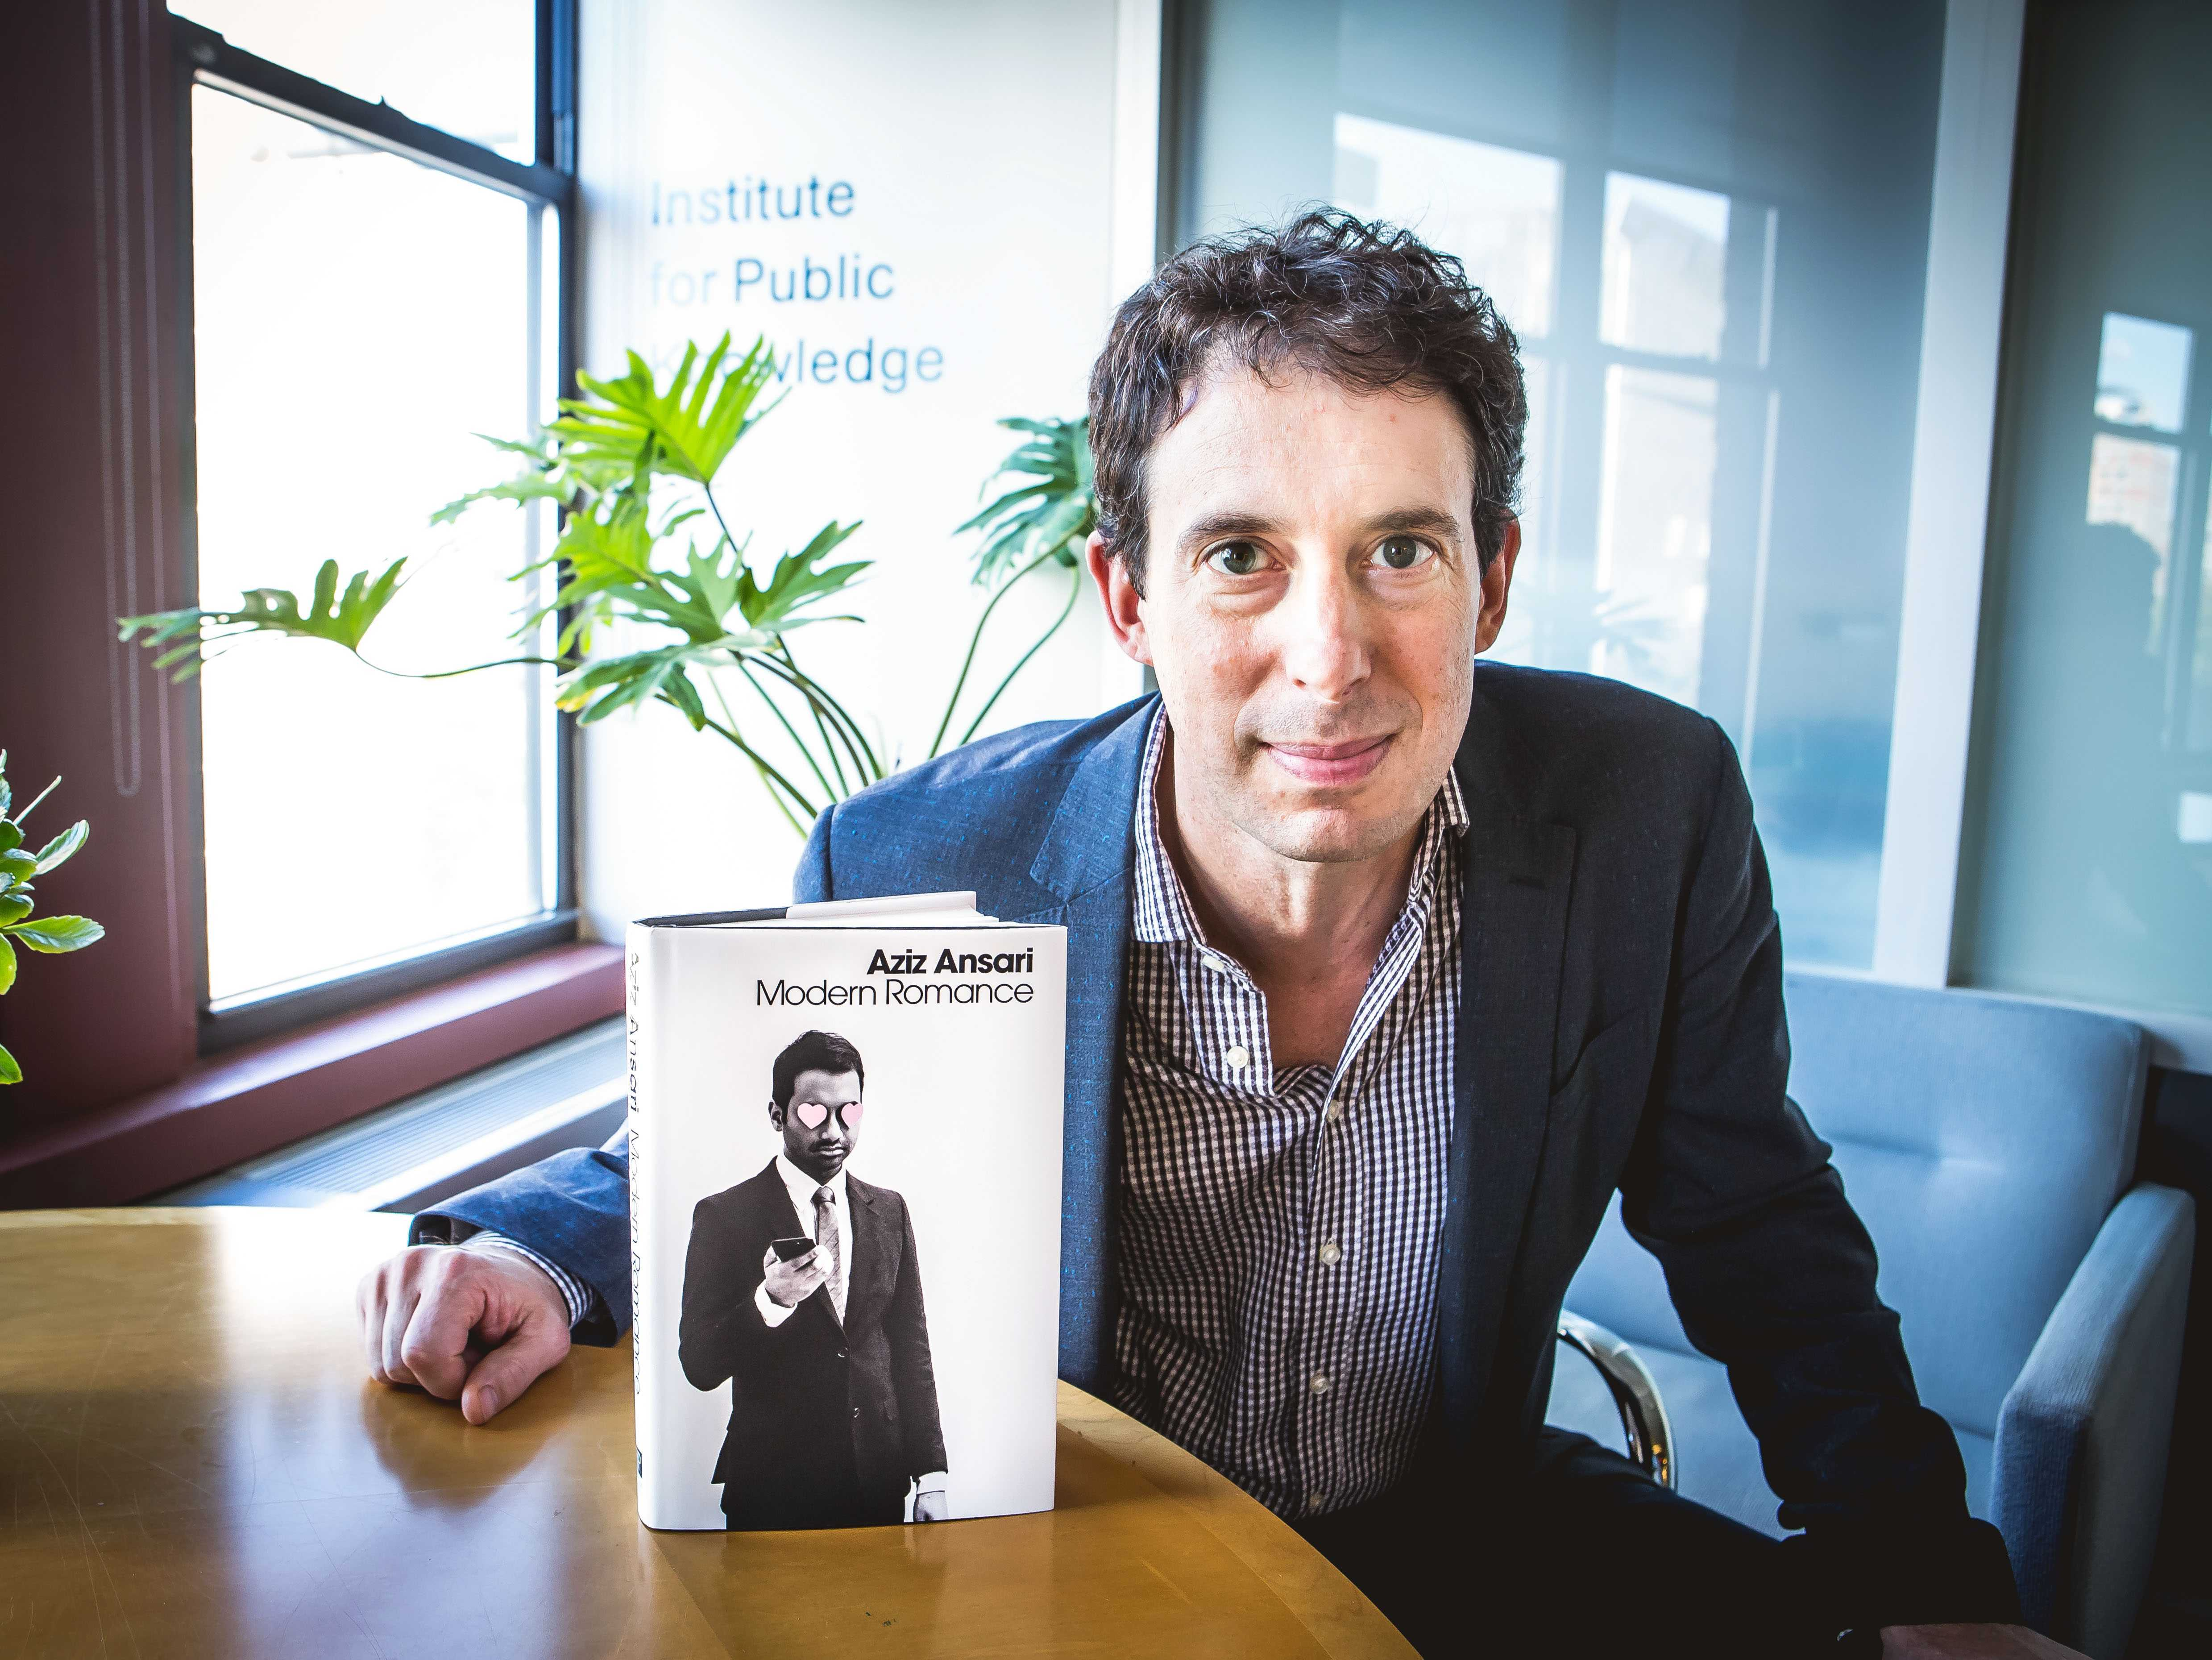 """Eric Klinenberg, Professor of Sociology at NYU, is pictured with his recently published book, """"Modern Romance"""